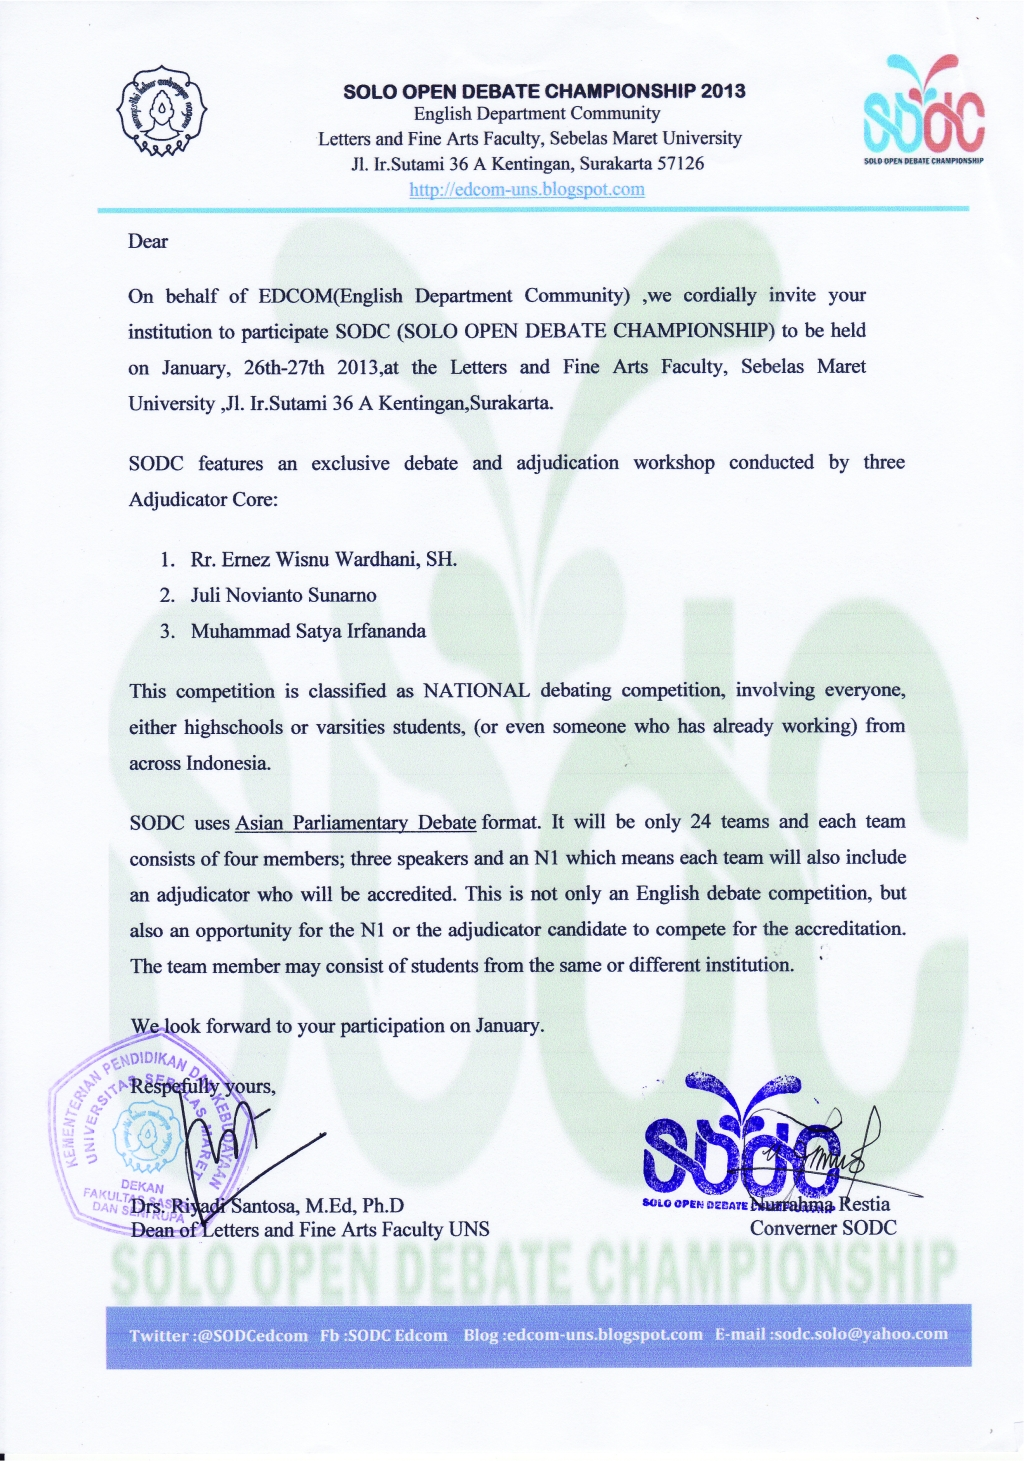 Invitation Letter For Debate Competition - Letter GiftWatches CO